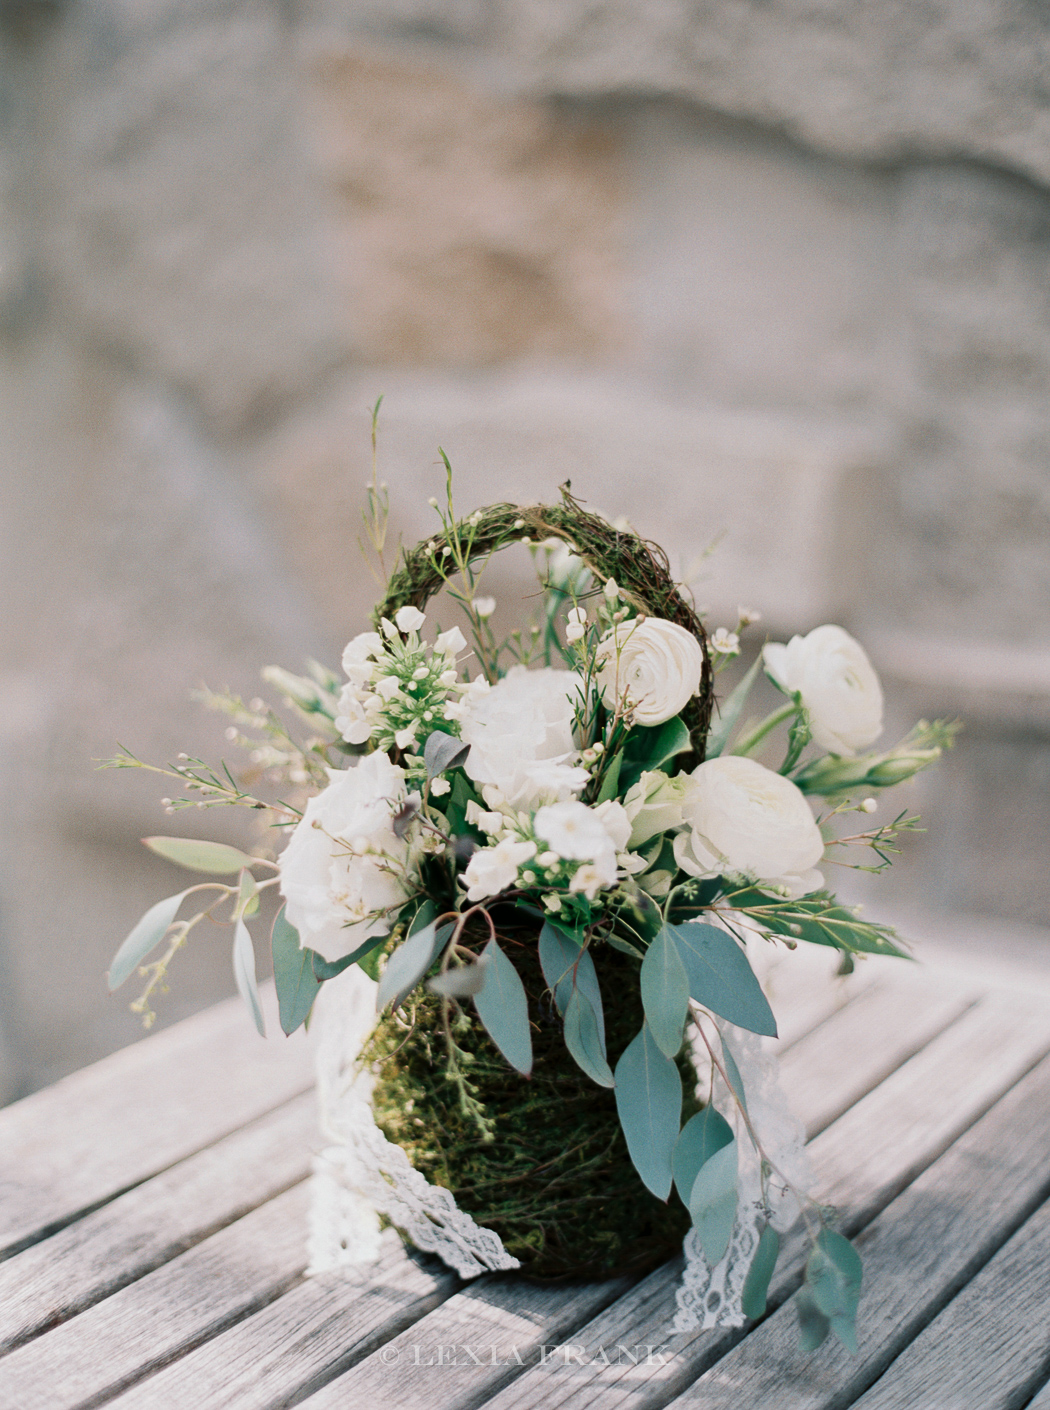 destination wedding photographer Lexia Frank- a portland oregon fine art film photographer- photographs this luxury wedding at whistling straits golf course wedding on film.